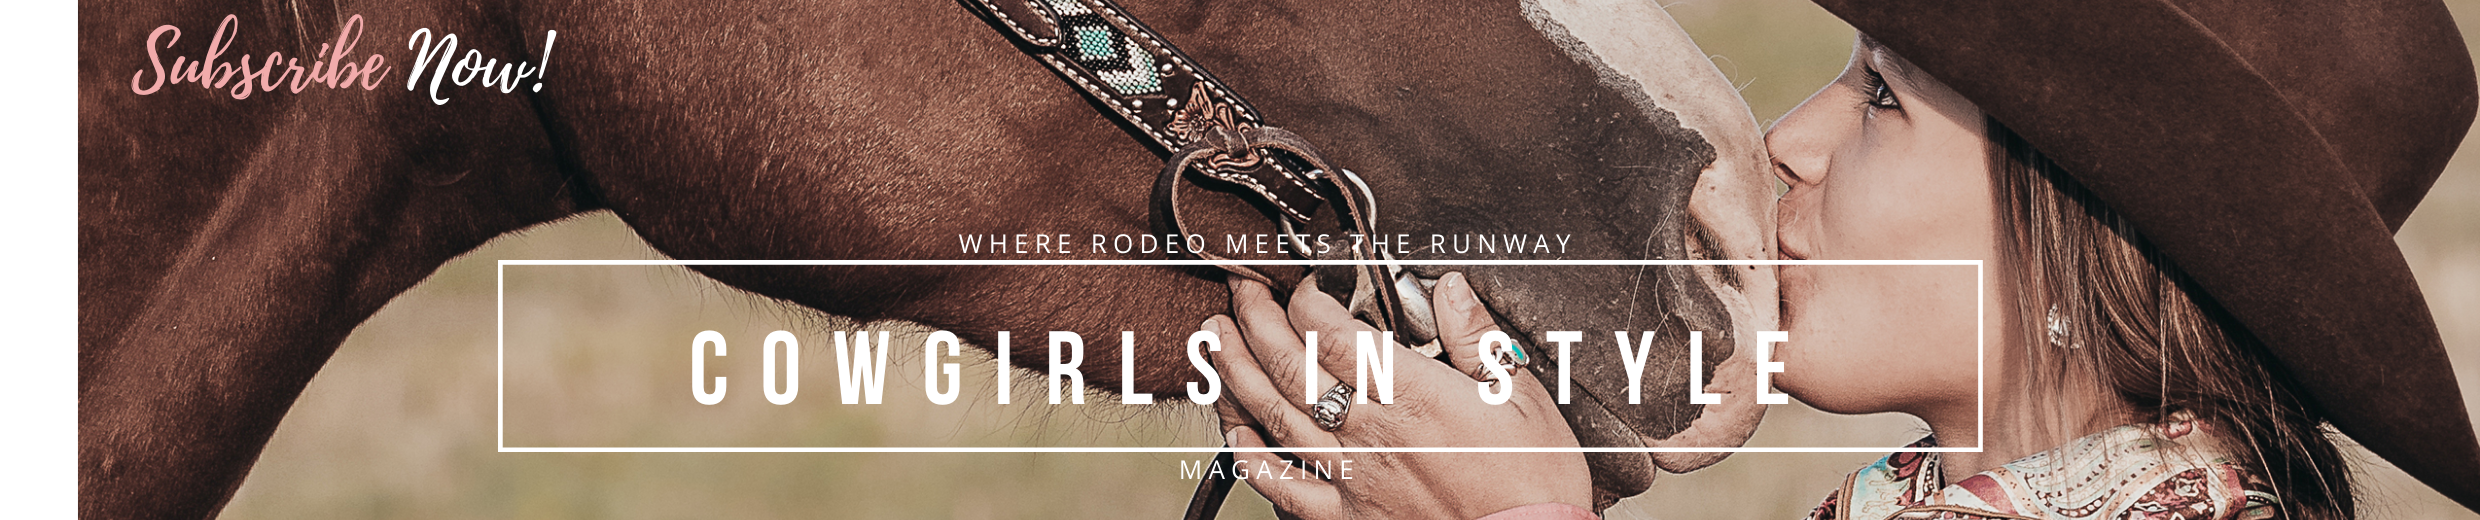 Hallmark's 'Just My Type' - Cowgirls In Style Magazine